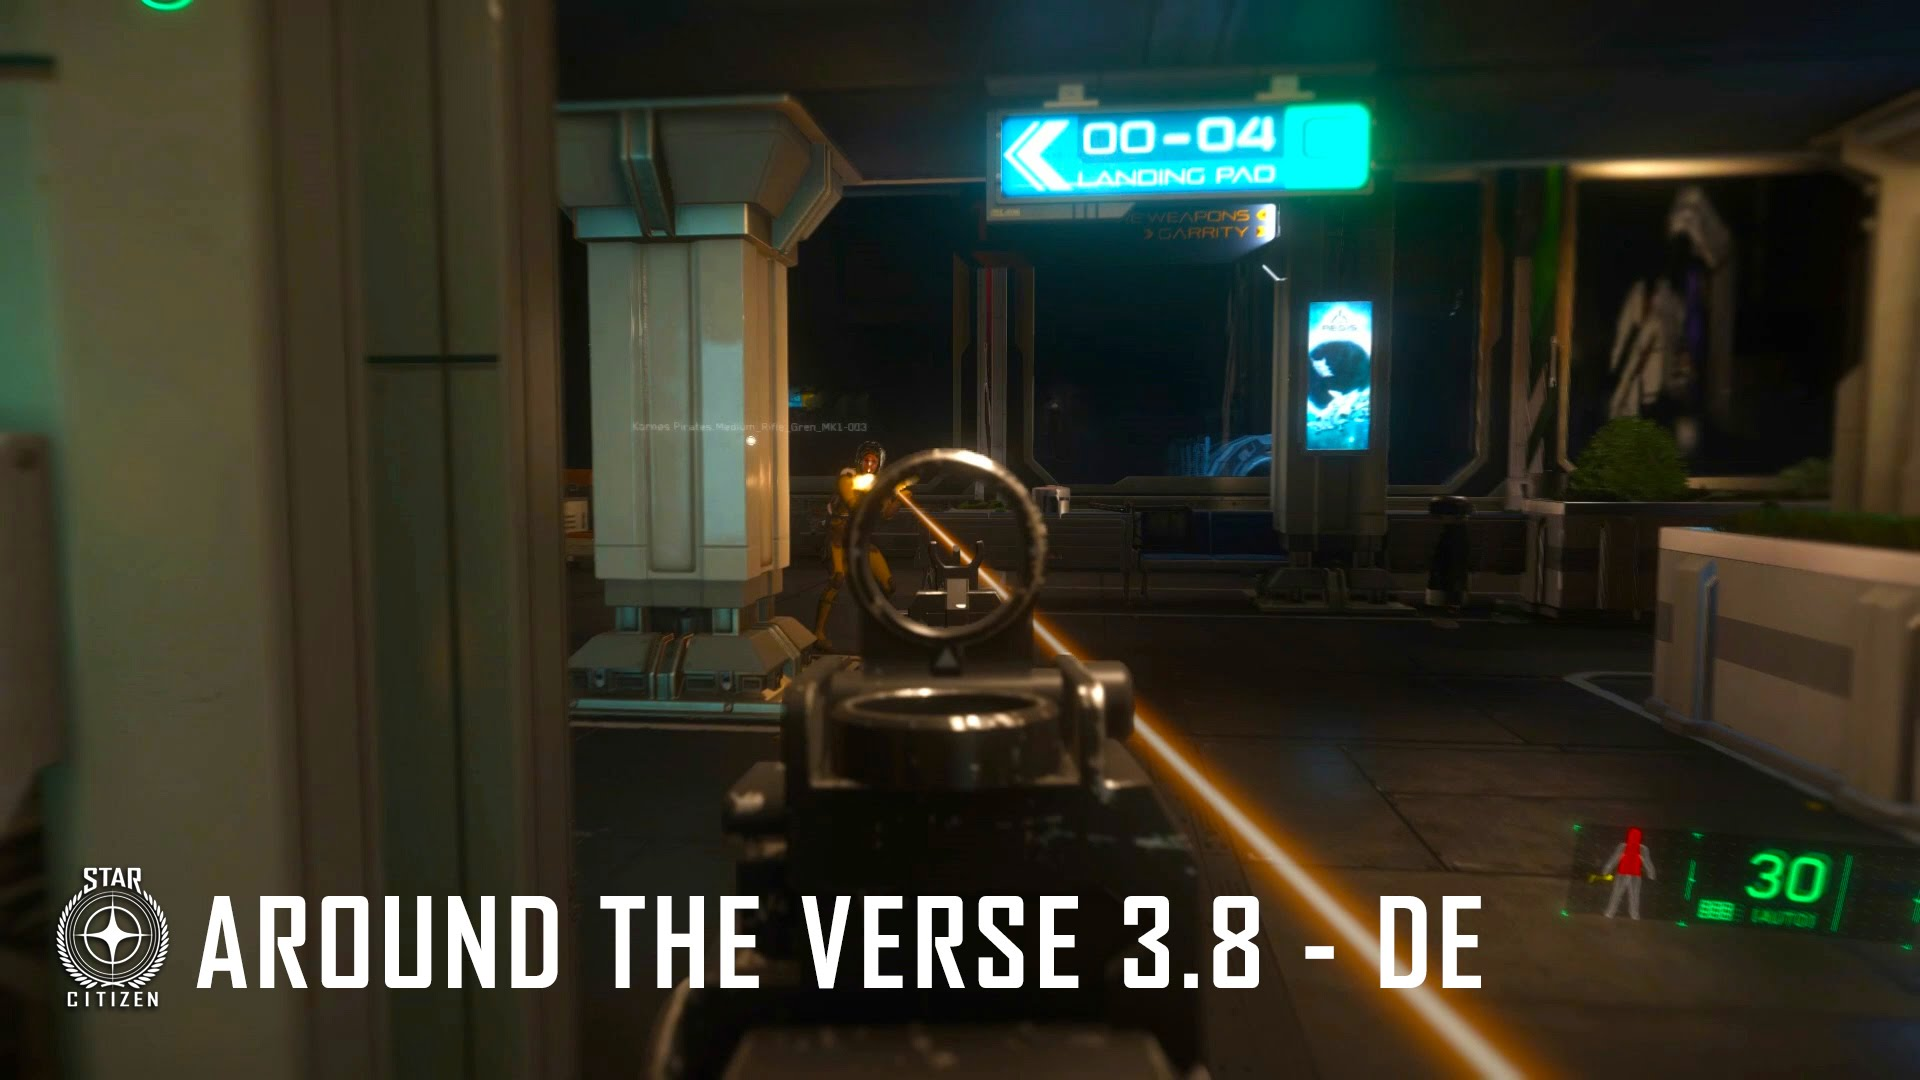 Star Citizen: Around The Verse 3.8 – DE